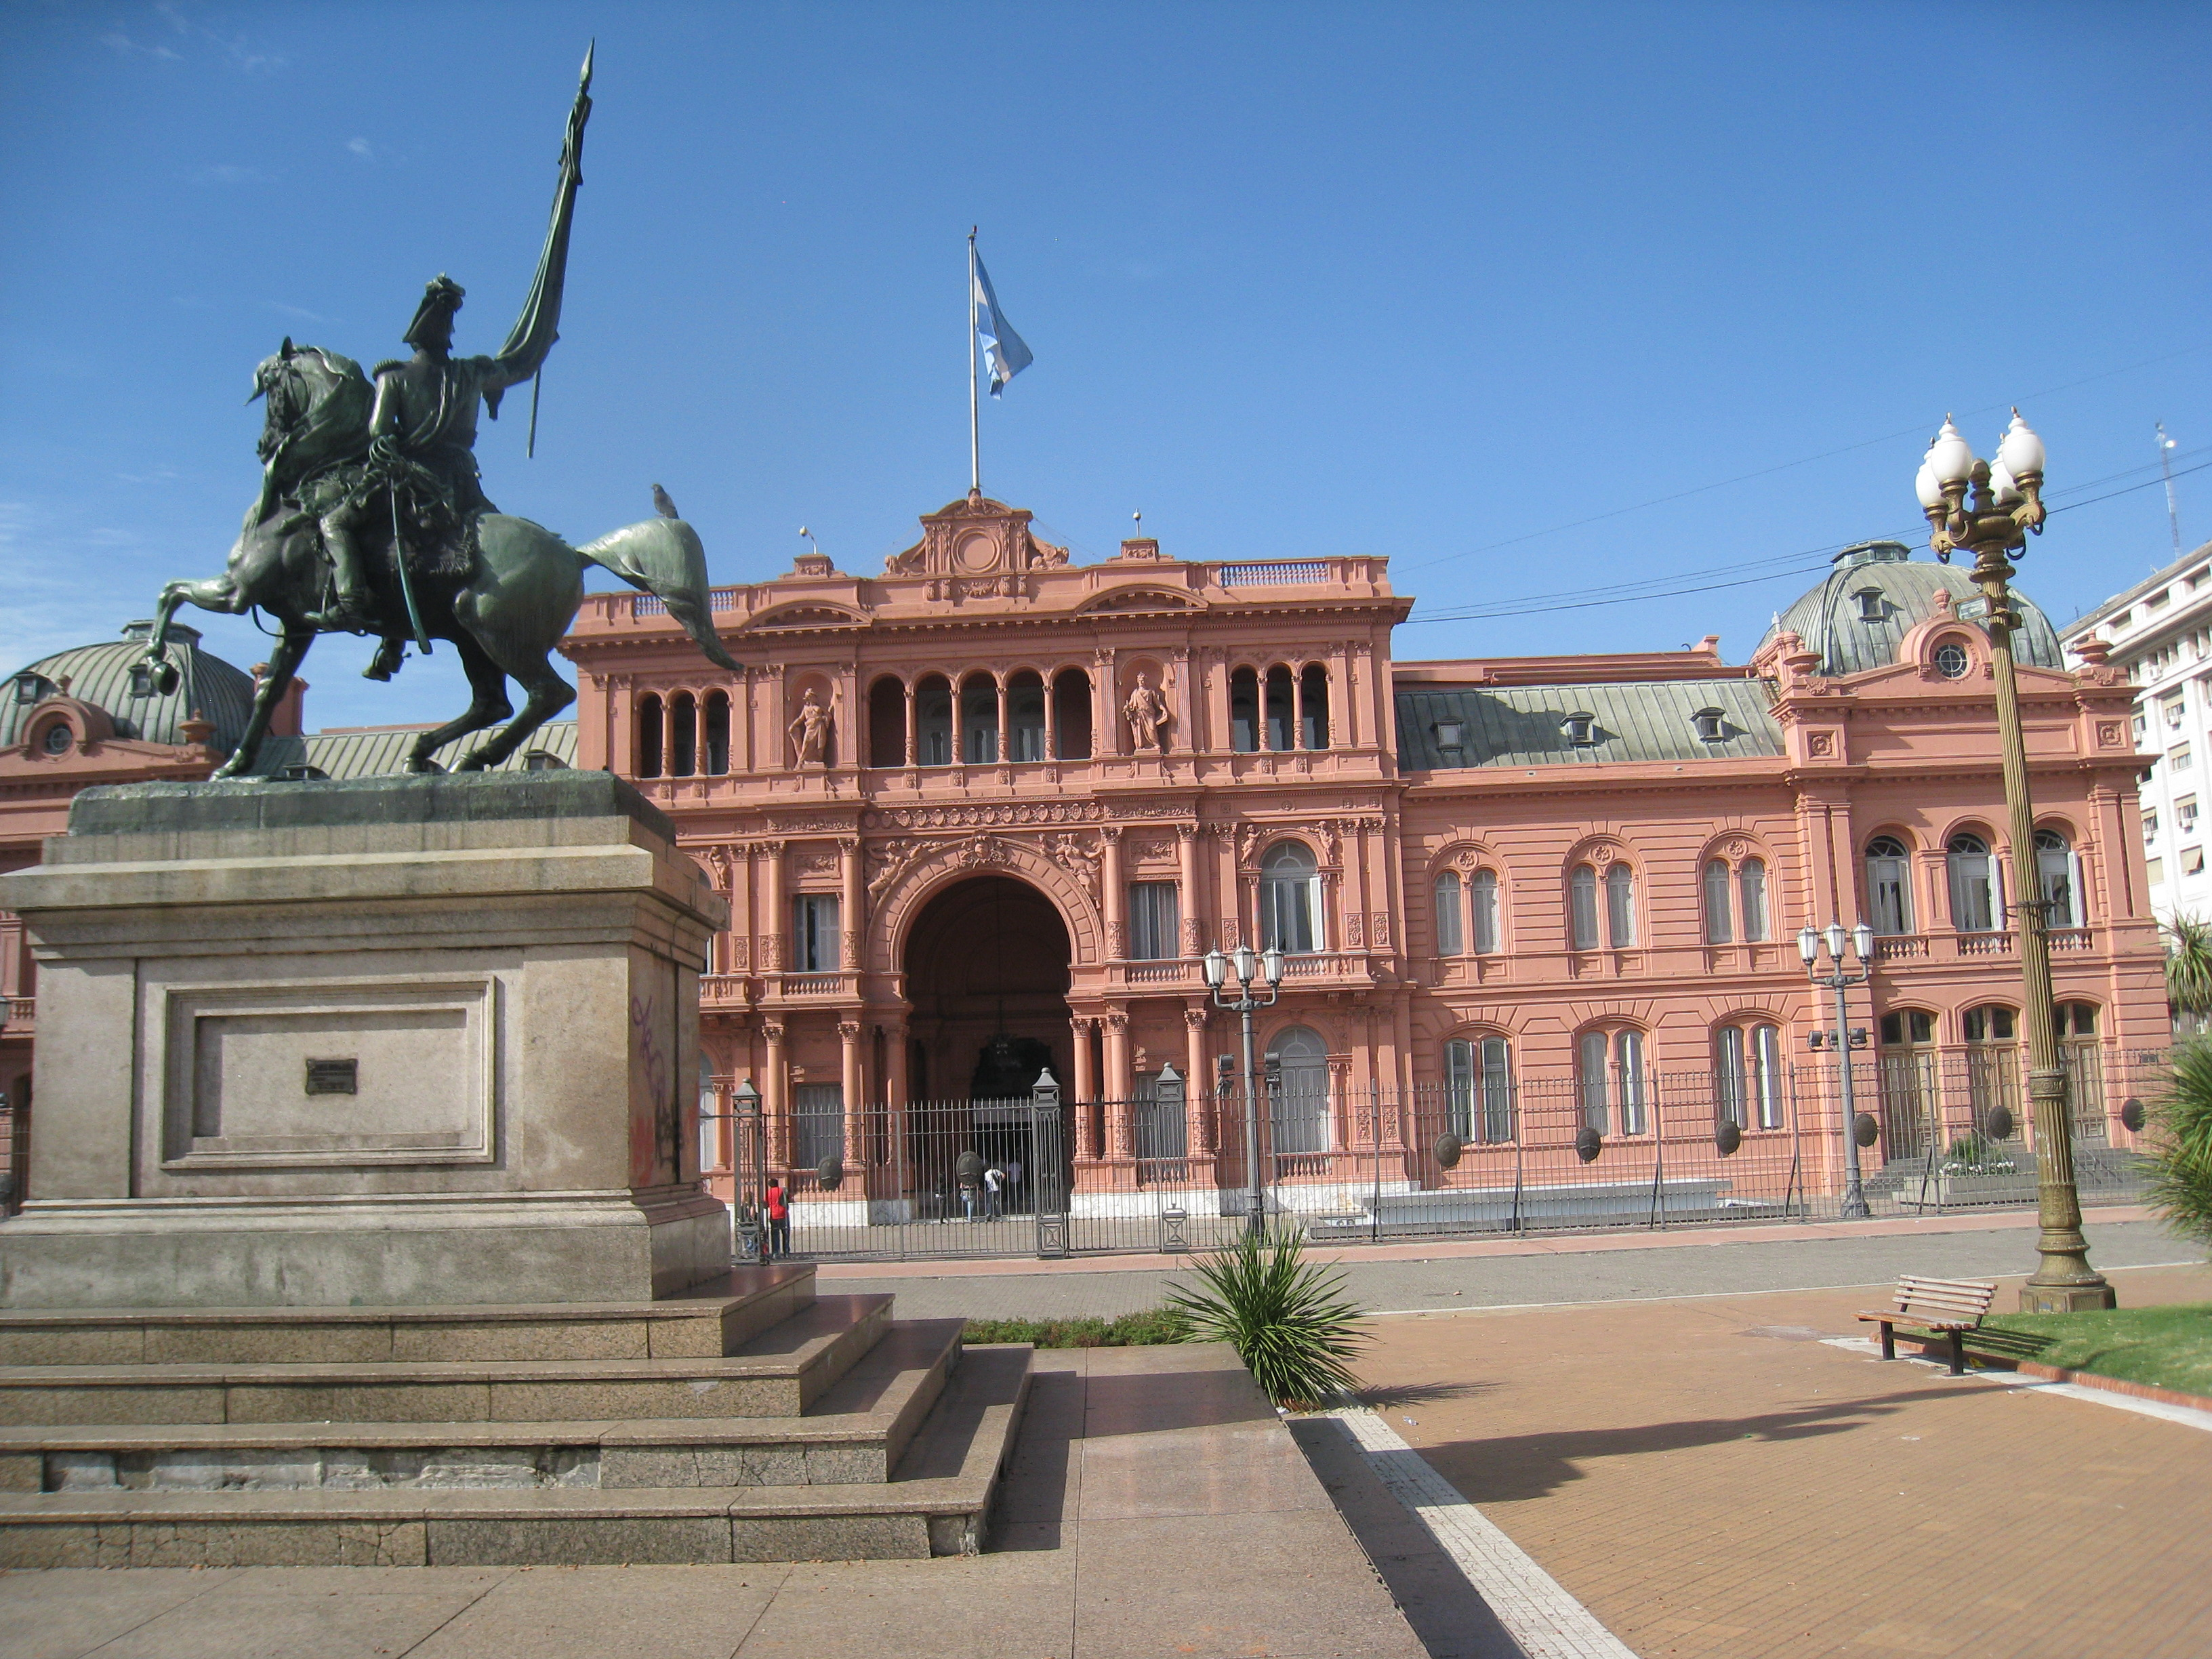 Buenos aires cosa vedere a buenos aires a tutto turismo for Cosa vedere a buenos aires